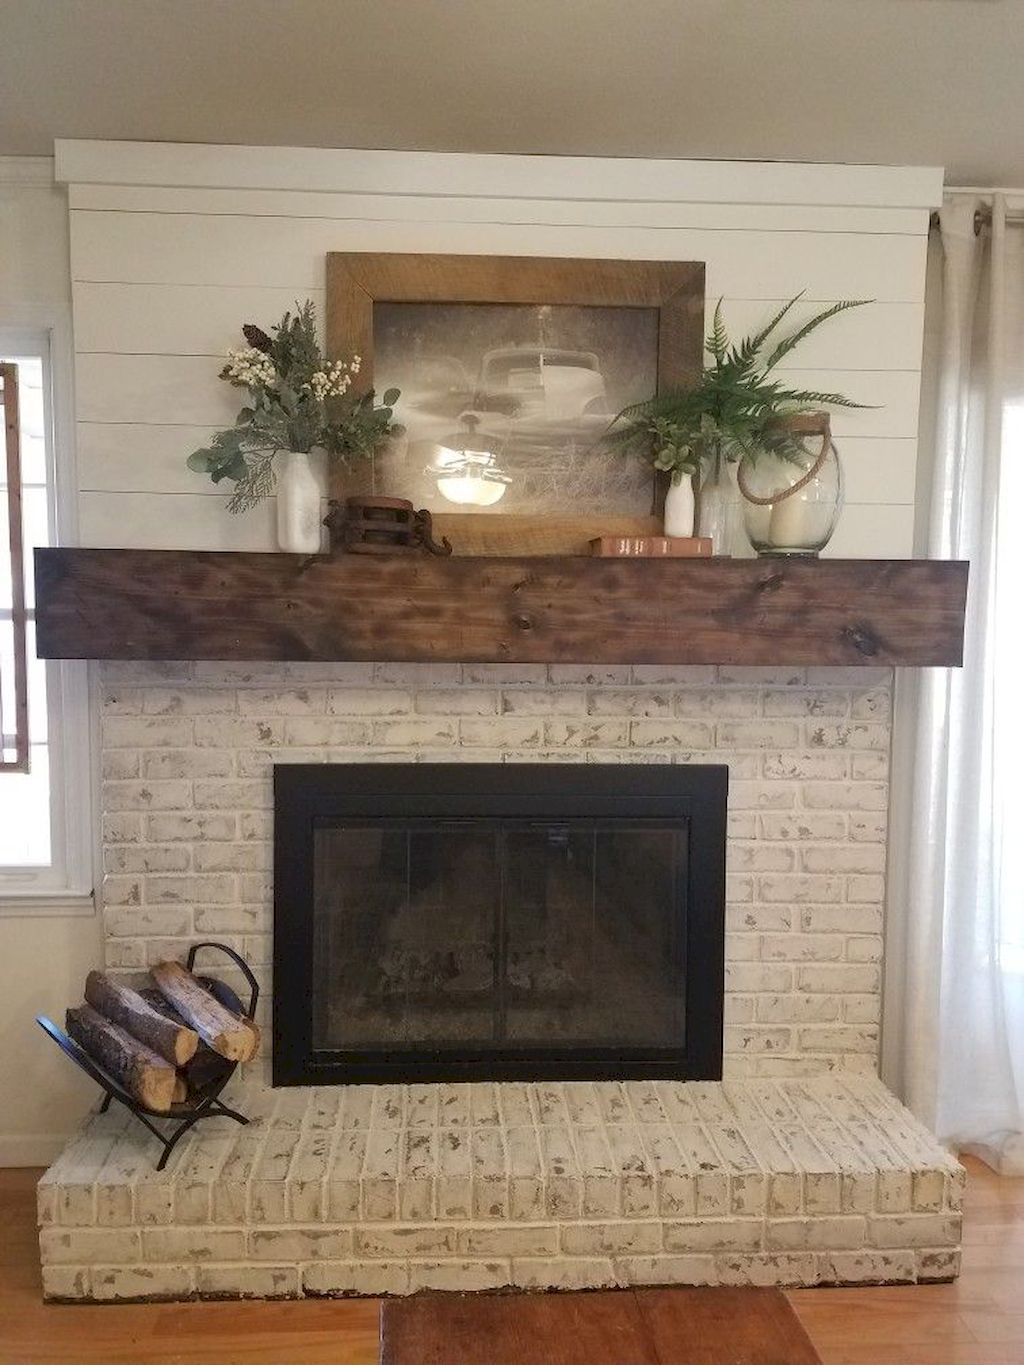 There are so many seasonal and festive fireplace mantel